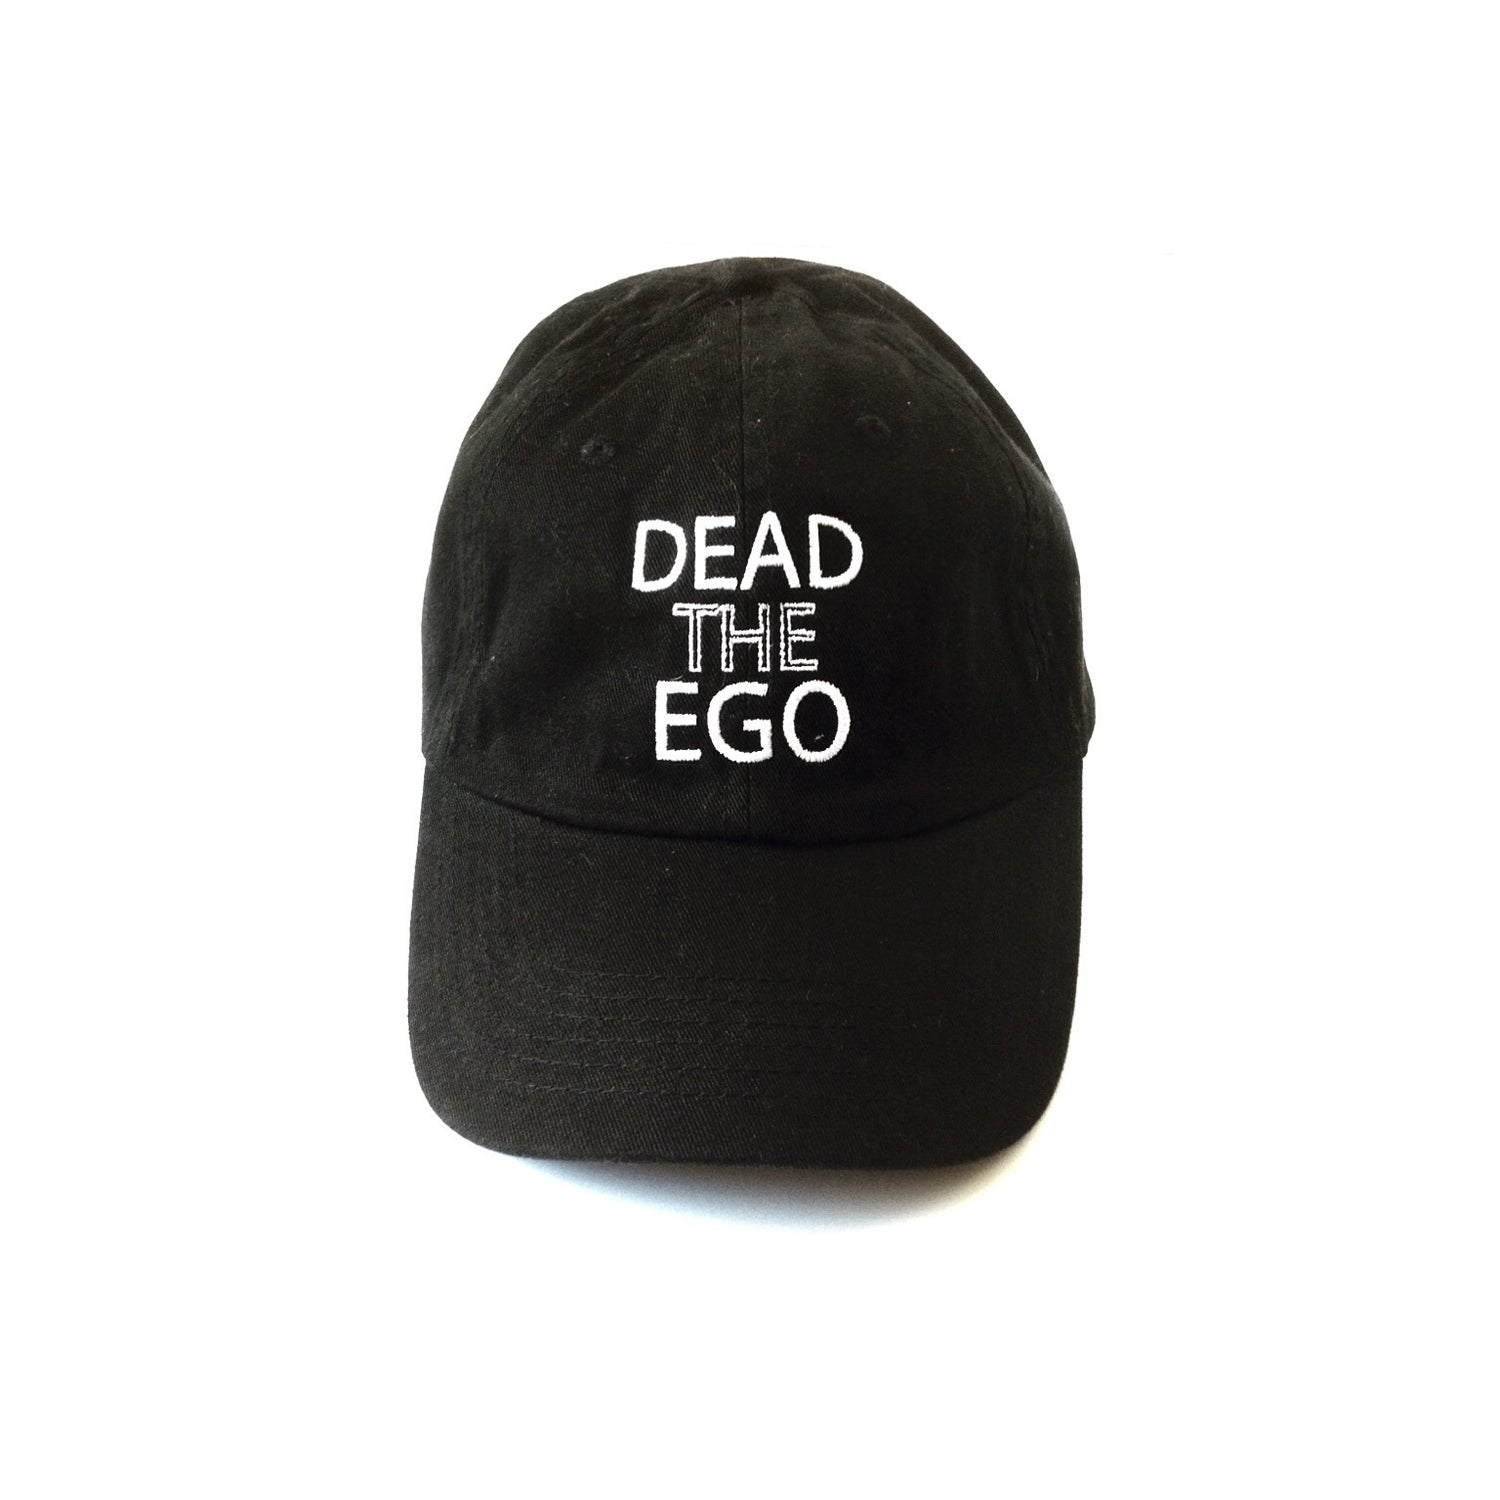 Image of KingNYC Dead The Ego Dad Hat